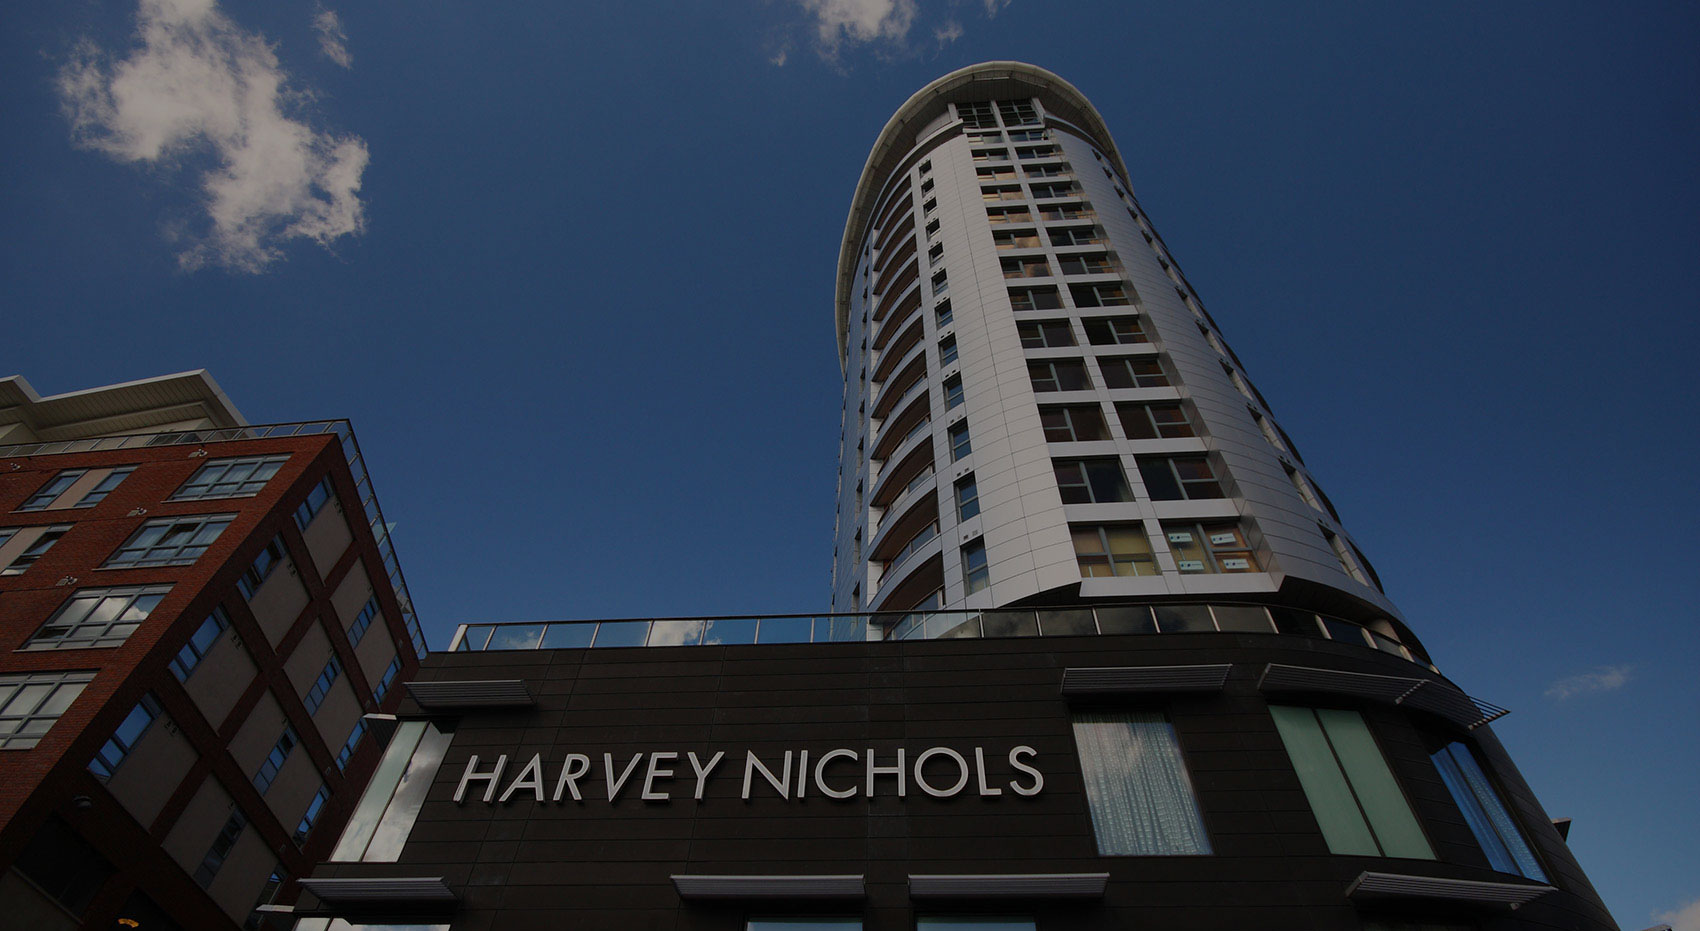 The exterior of a commercial building belonging to Harvey Nichols